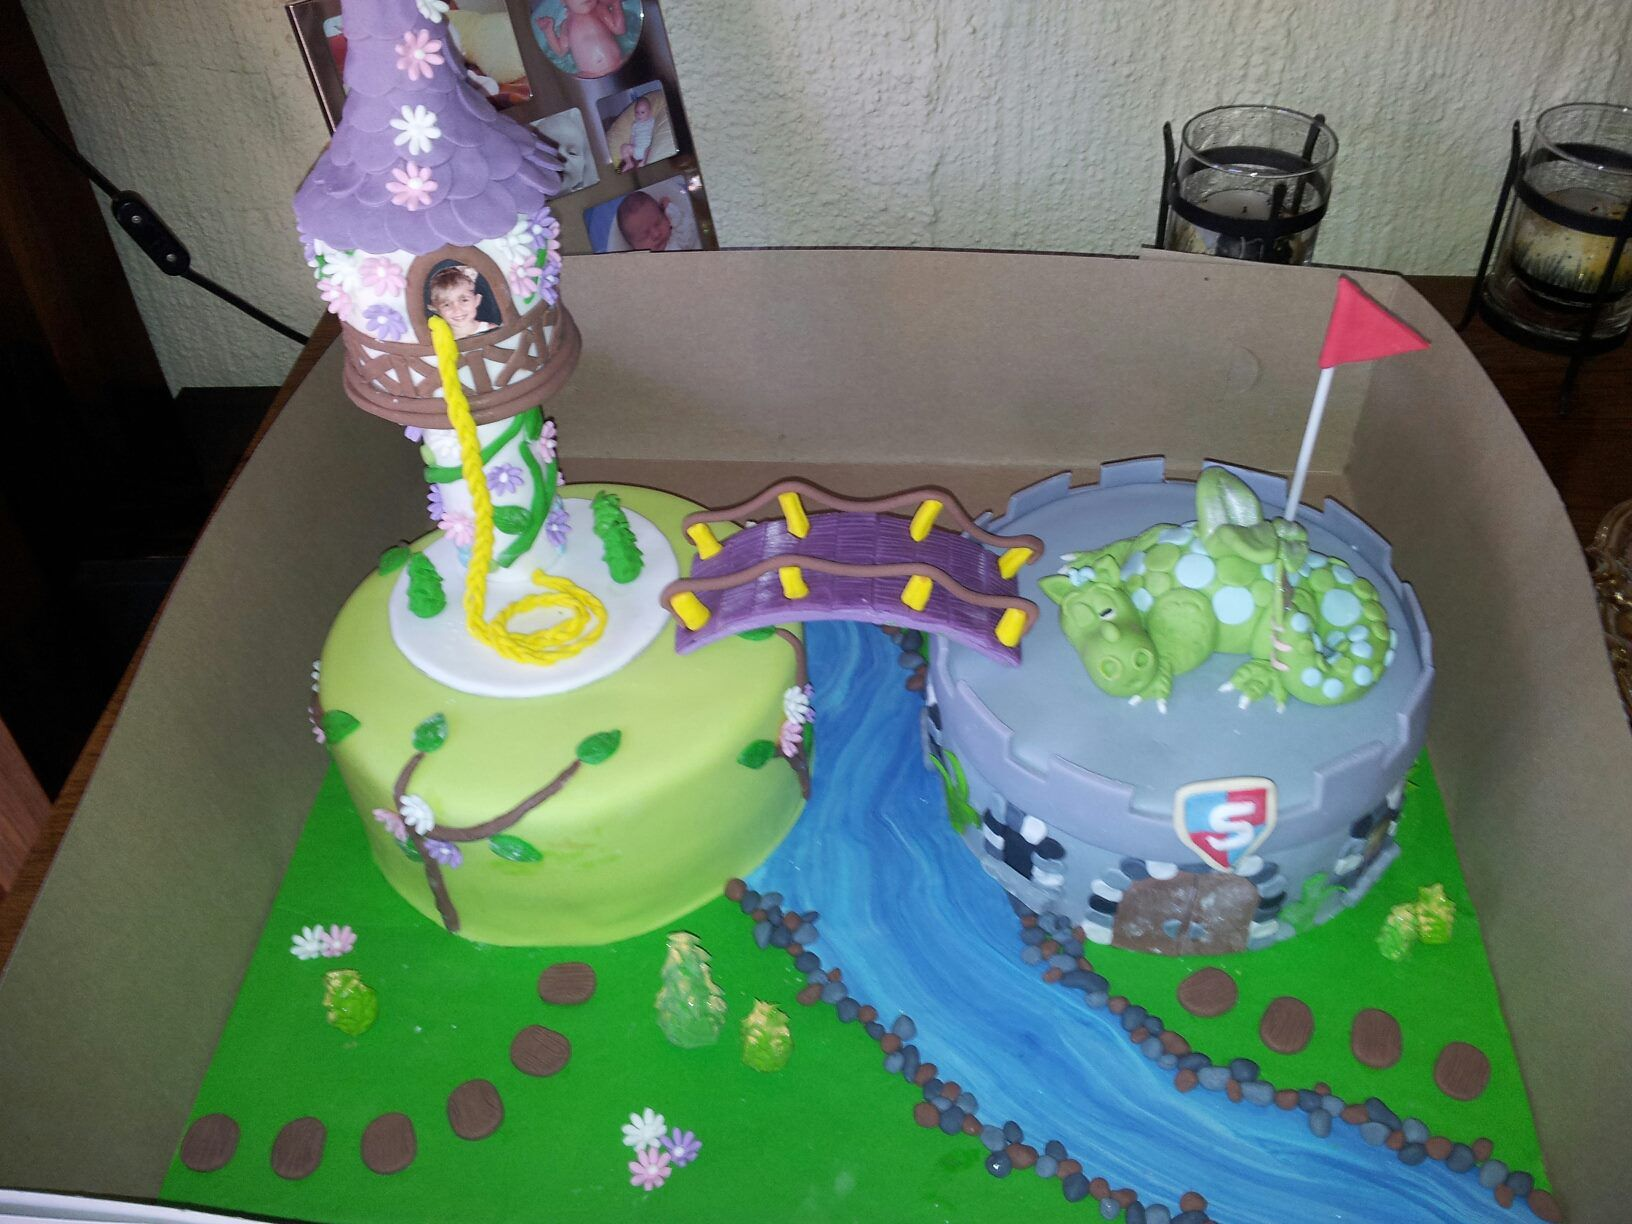 Phenomenal 5Th Birthday Cake For Twins Boy And Girl The Cake Boutique Funny Birthday Cards Online Inifodamsfinfo